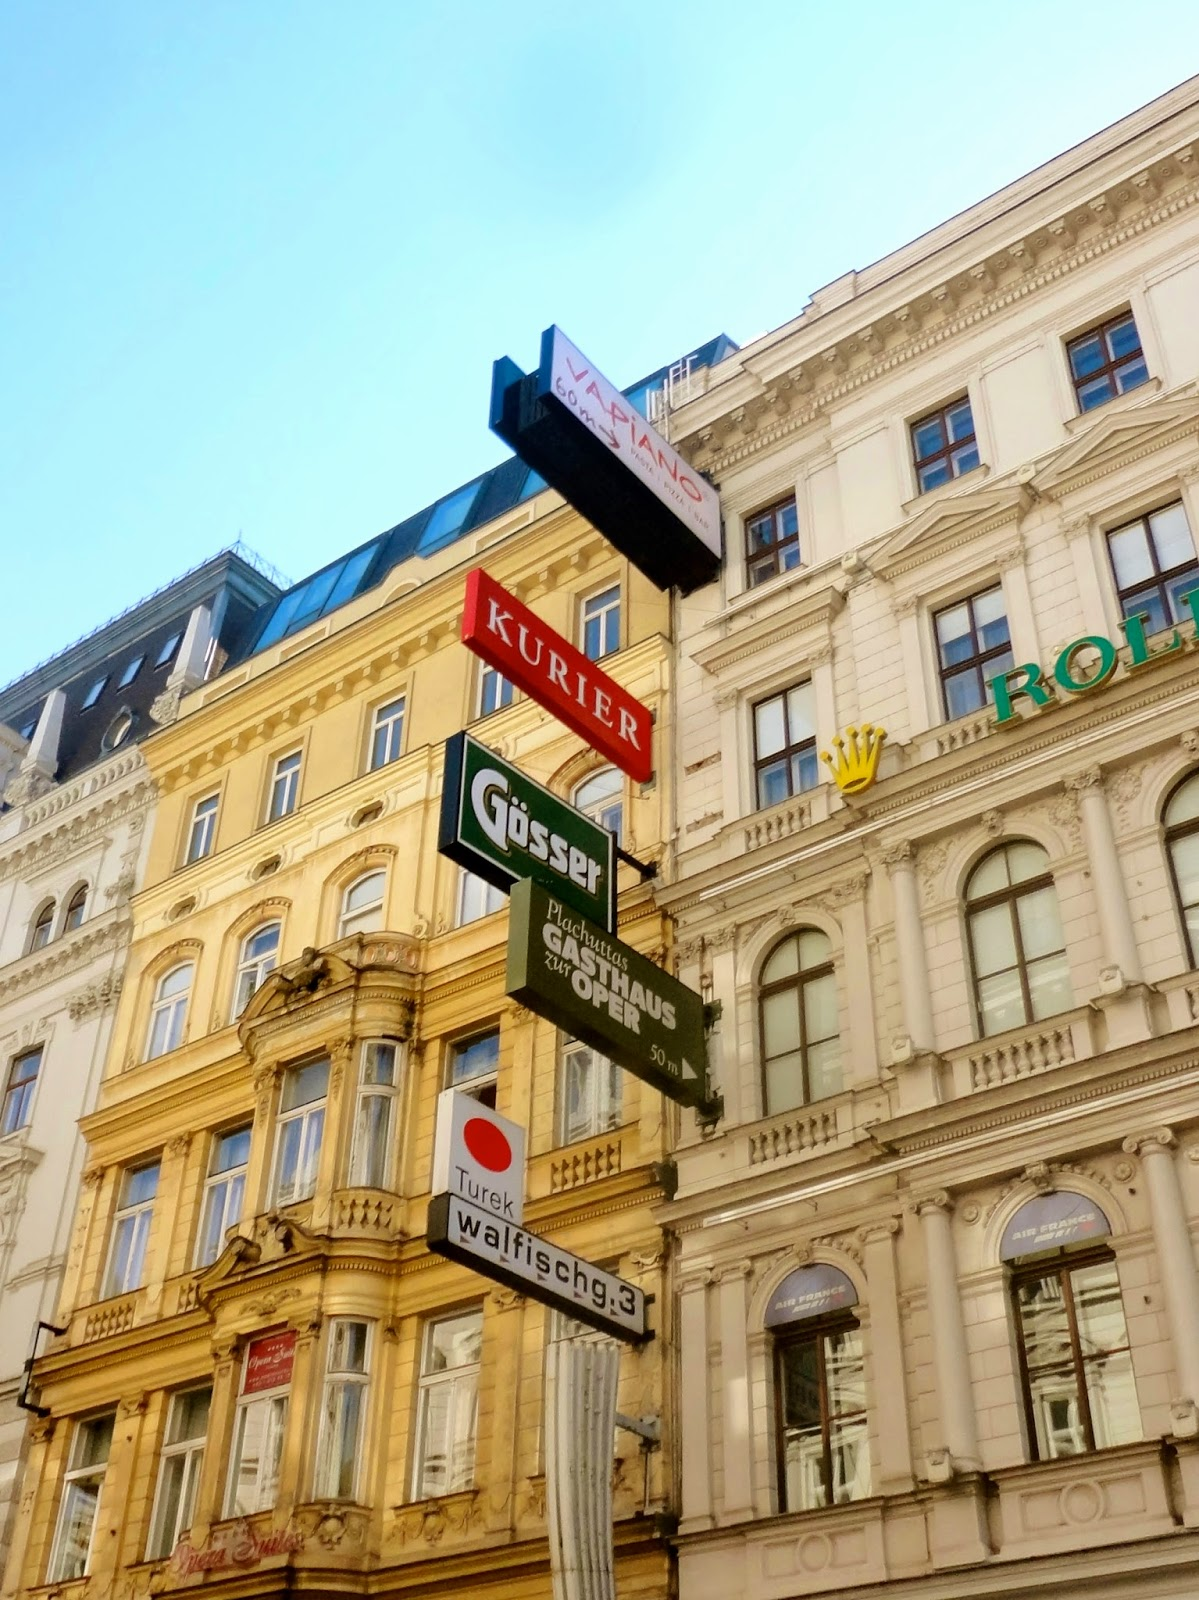 Building exterior with signs in Vienna, Austria